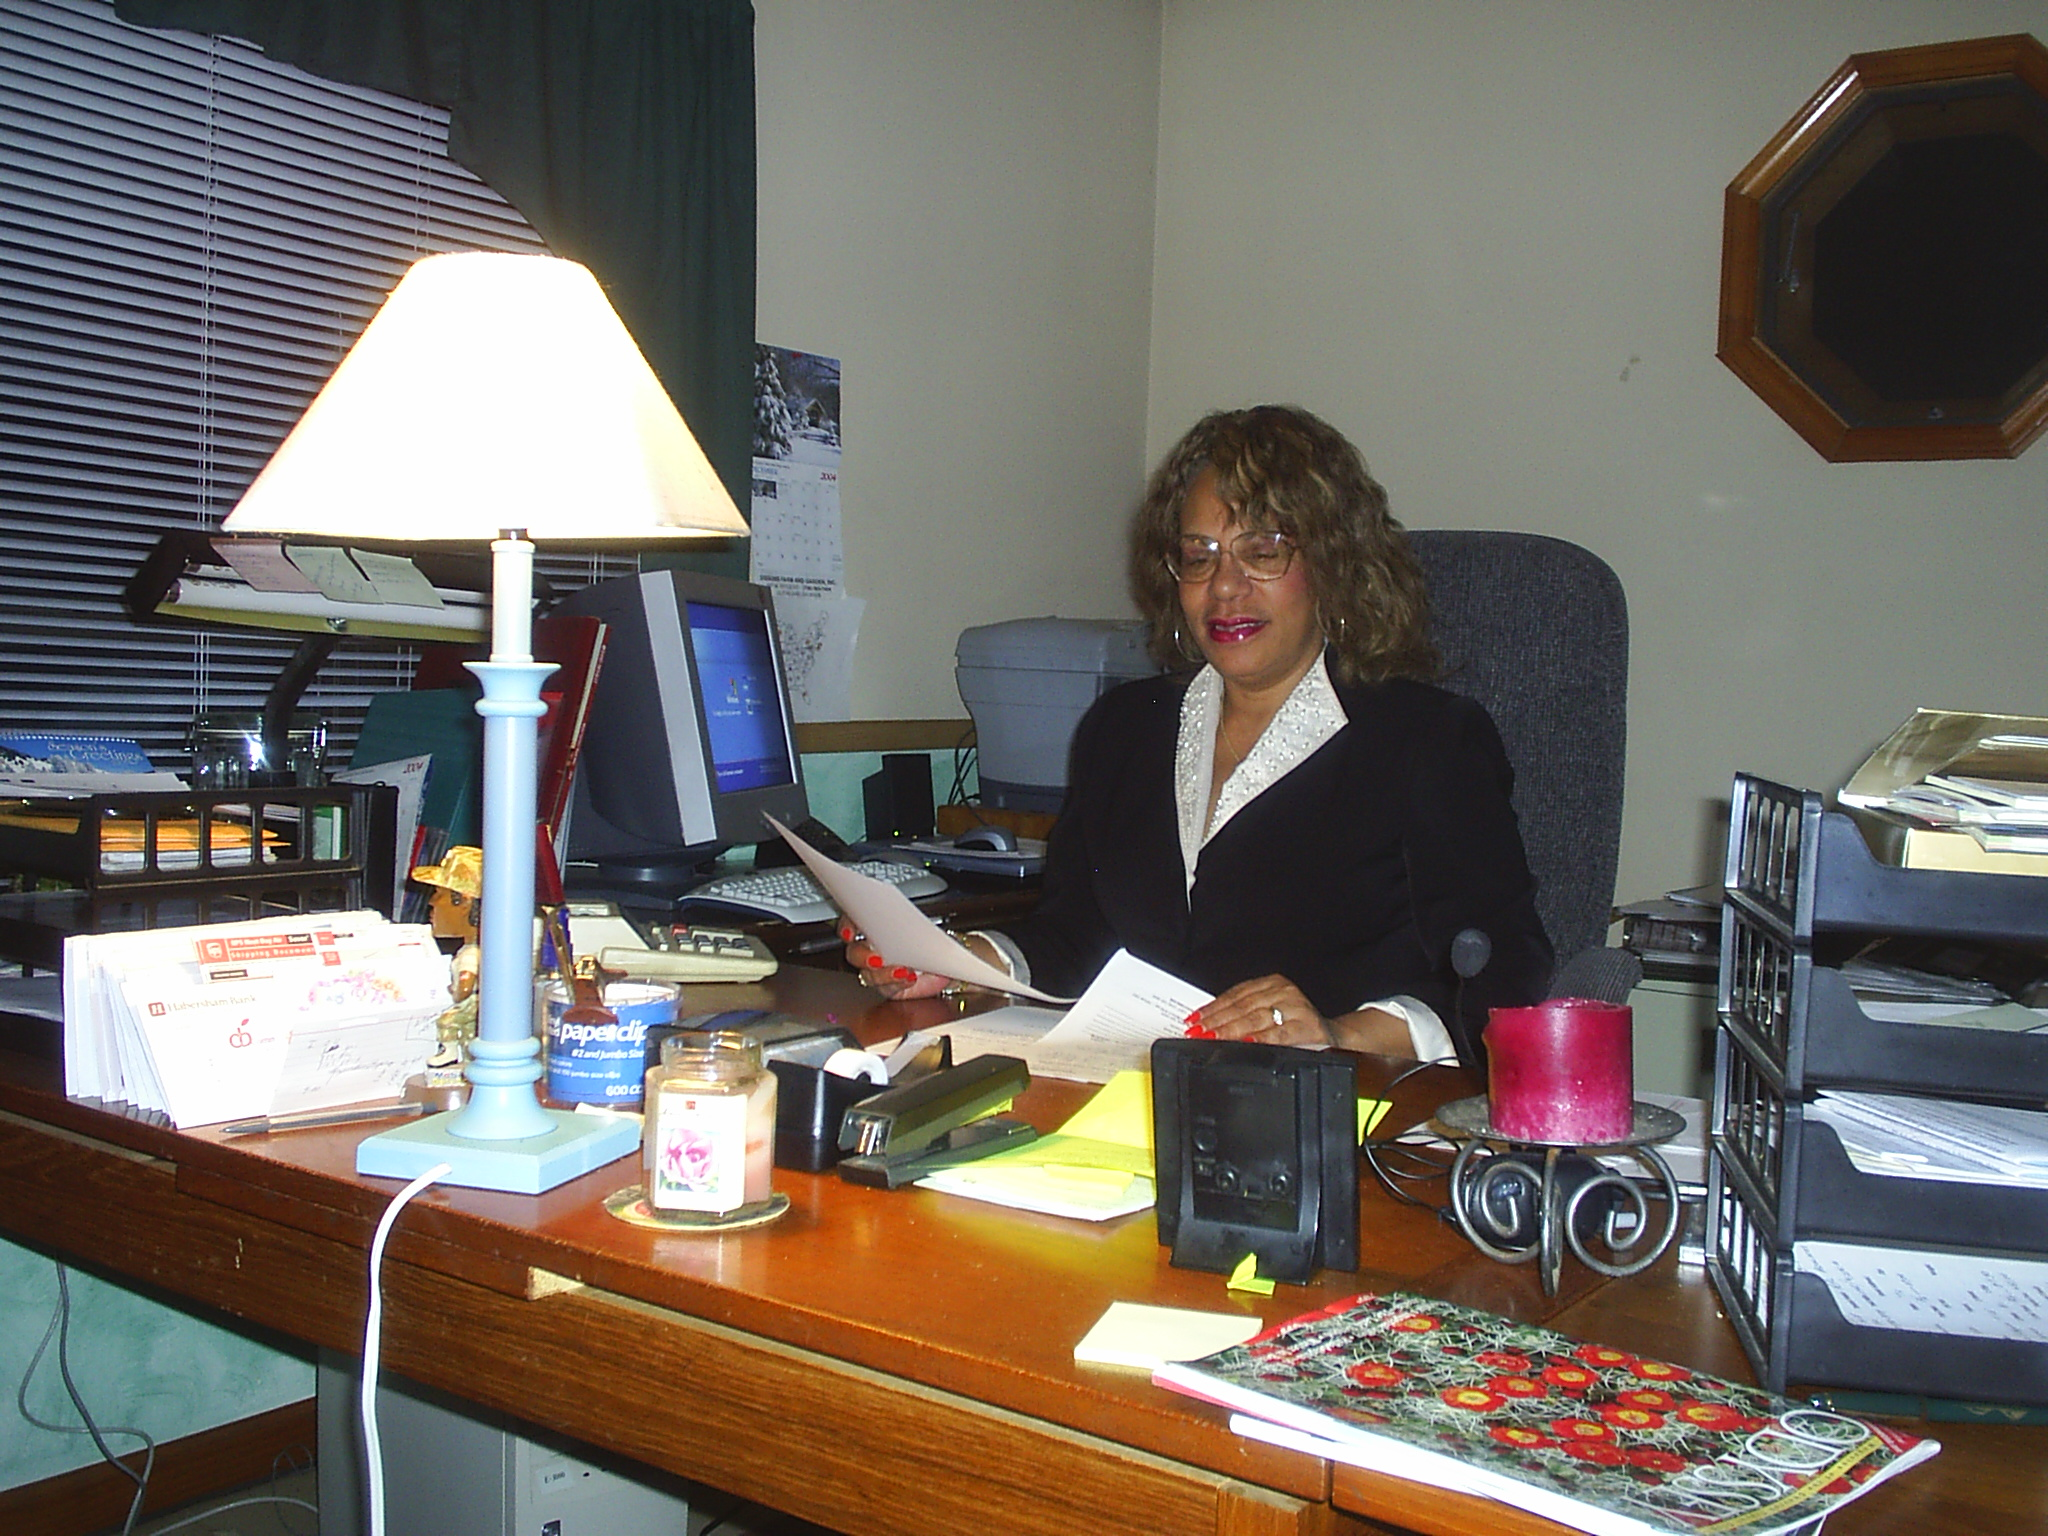 NORMA JEAN BYARS/CUSTOMER SERVICE DIRECTOR